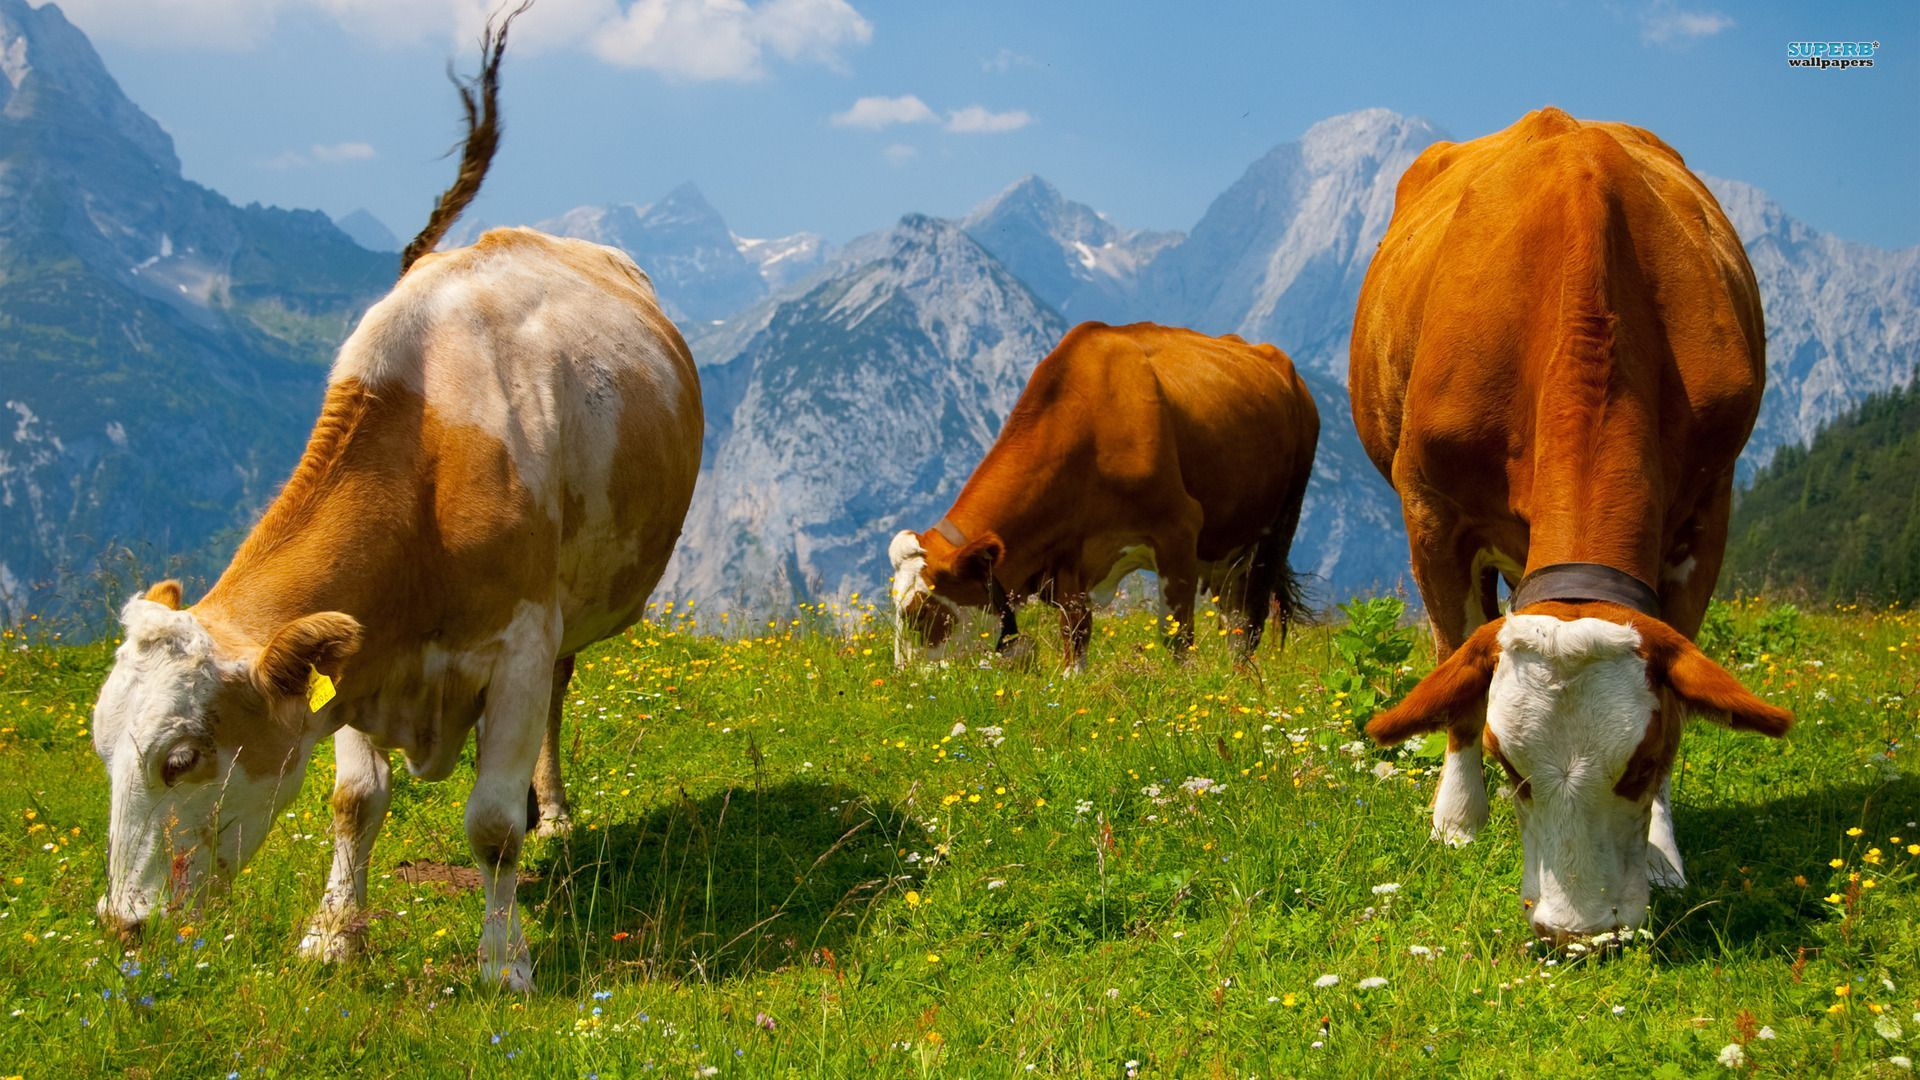 Hd Cows In The Alps Computer Wallpaper Animal Wallpaper Animals Cow Wallpaper